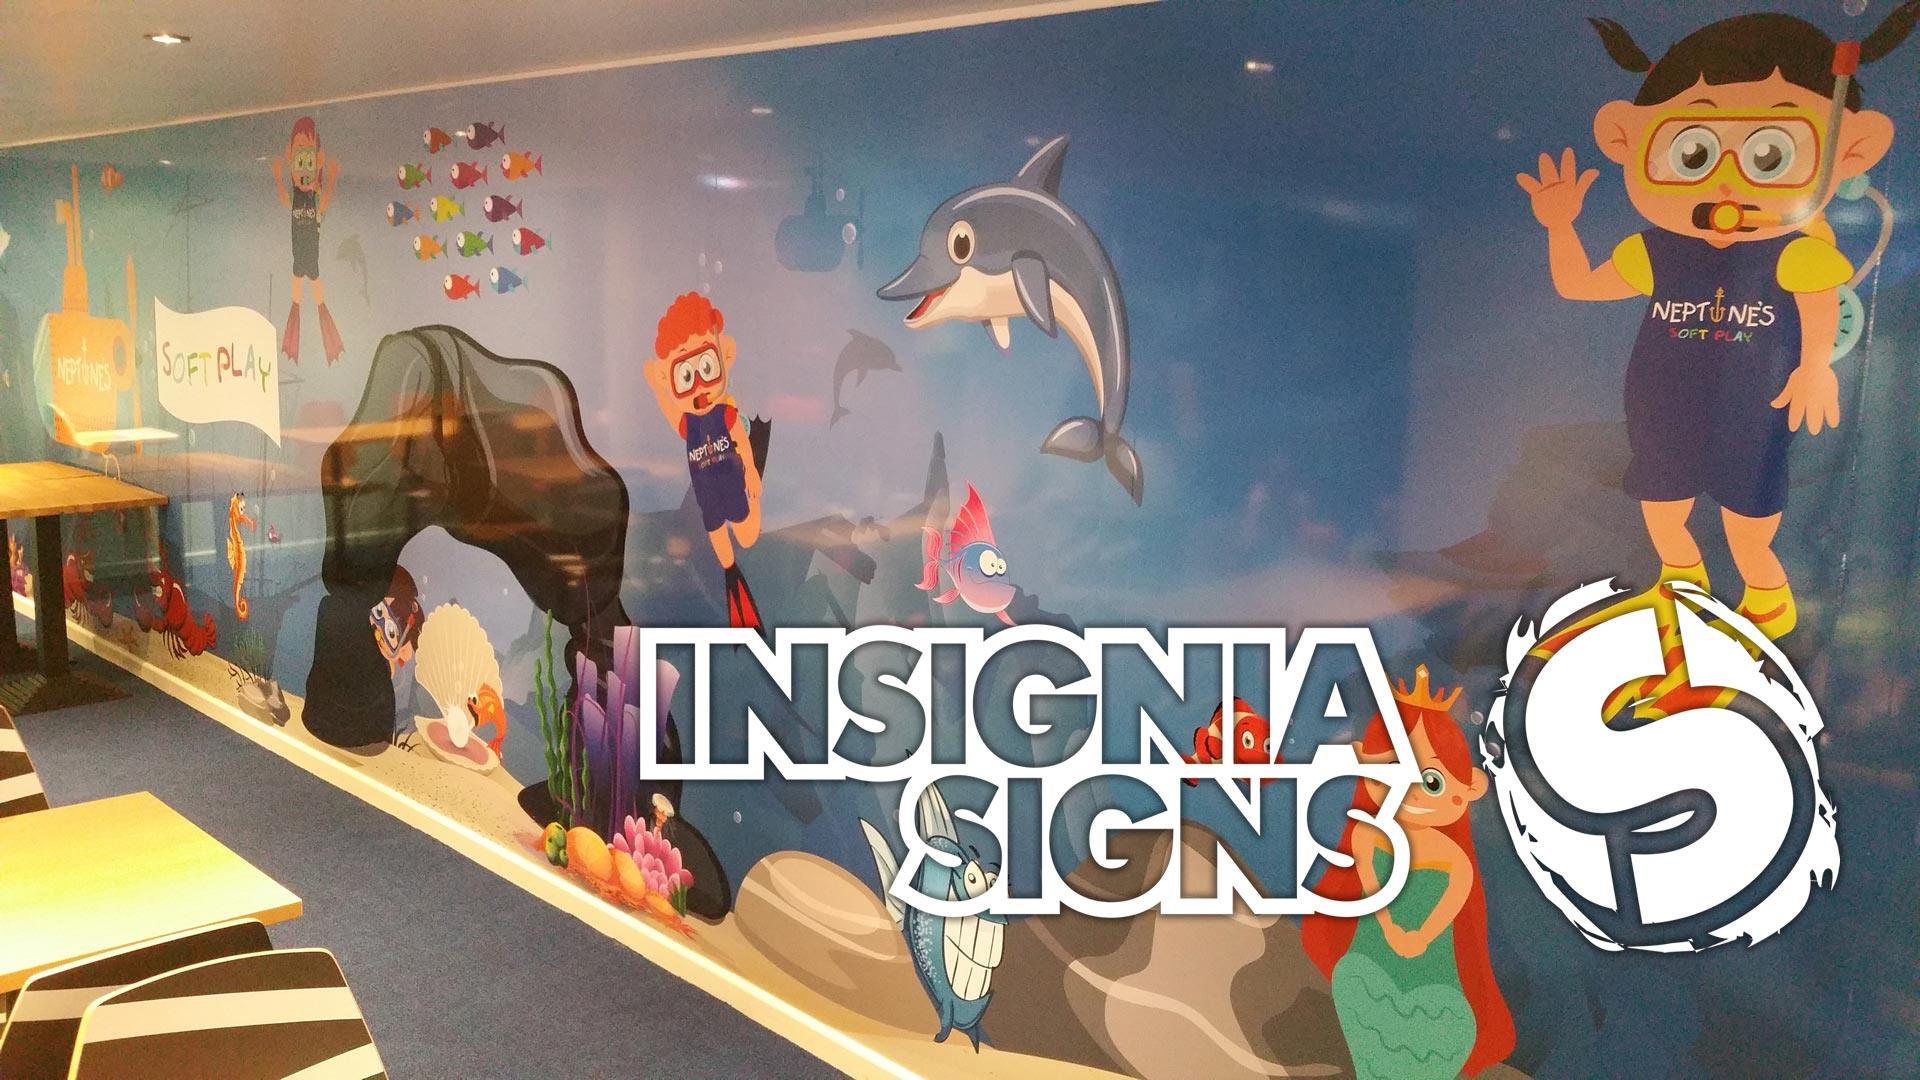 About Insignia Signs - Wall Graphics